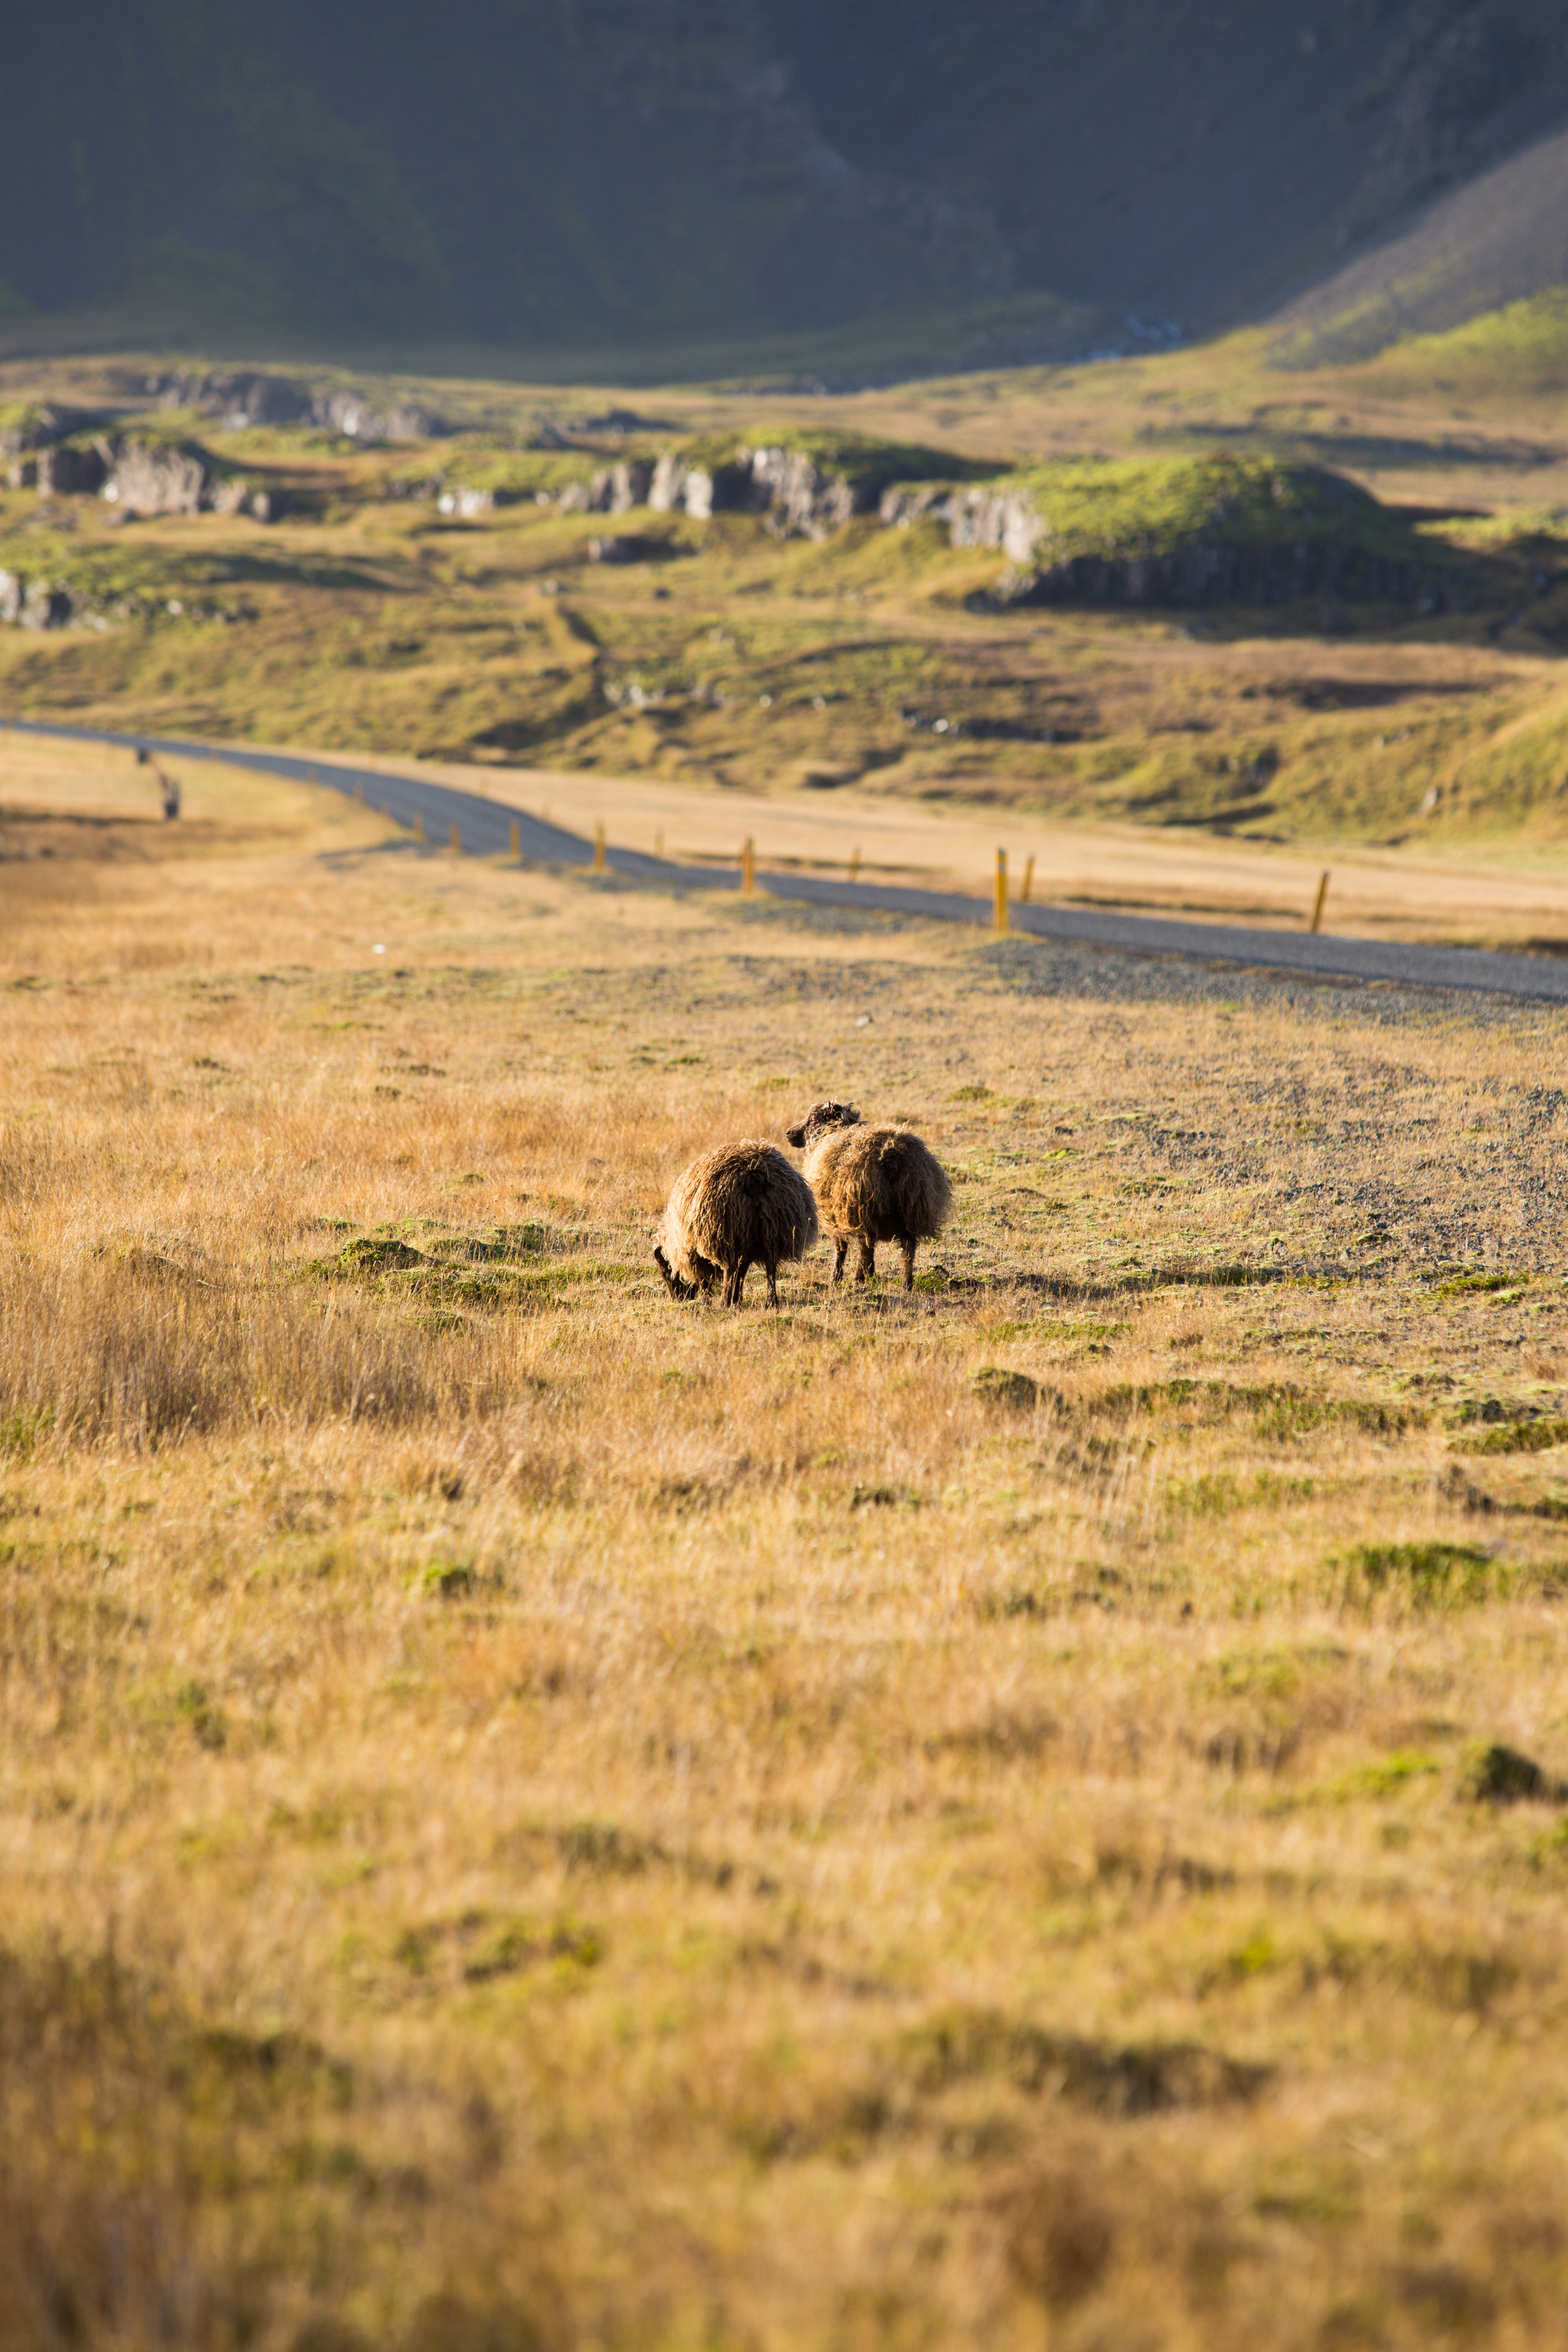 Roaming throughout the Icelandic grasslands are their prized sheep. WIth little to worry about besides a GPS locator on their ear, many roam all day and night as they wish.